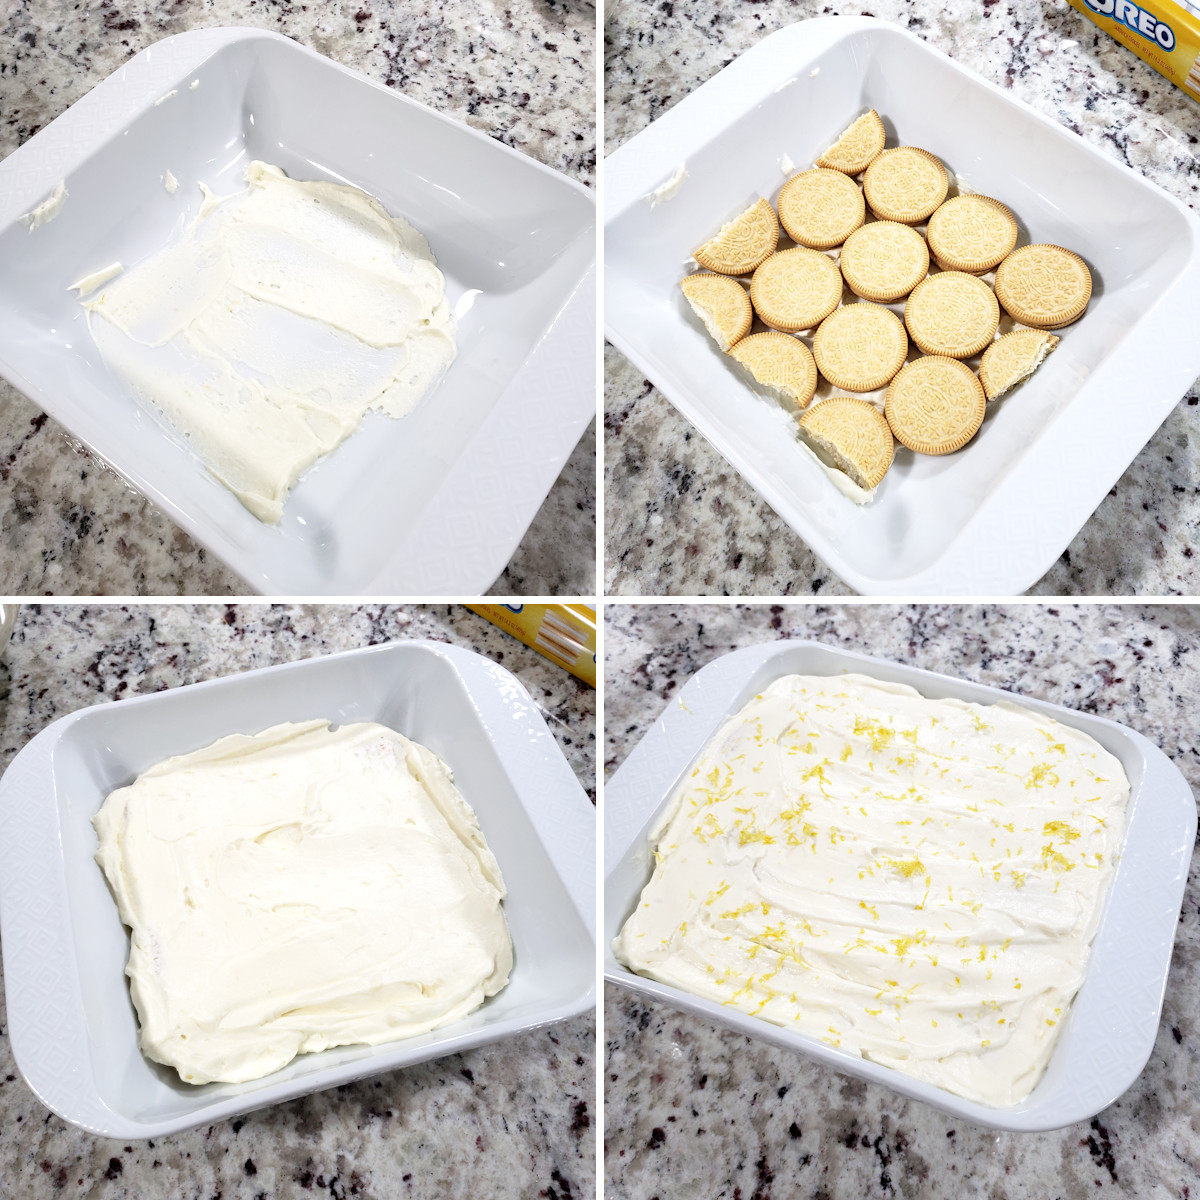 Assembling layers of an icebox cake.